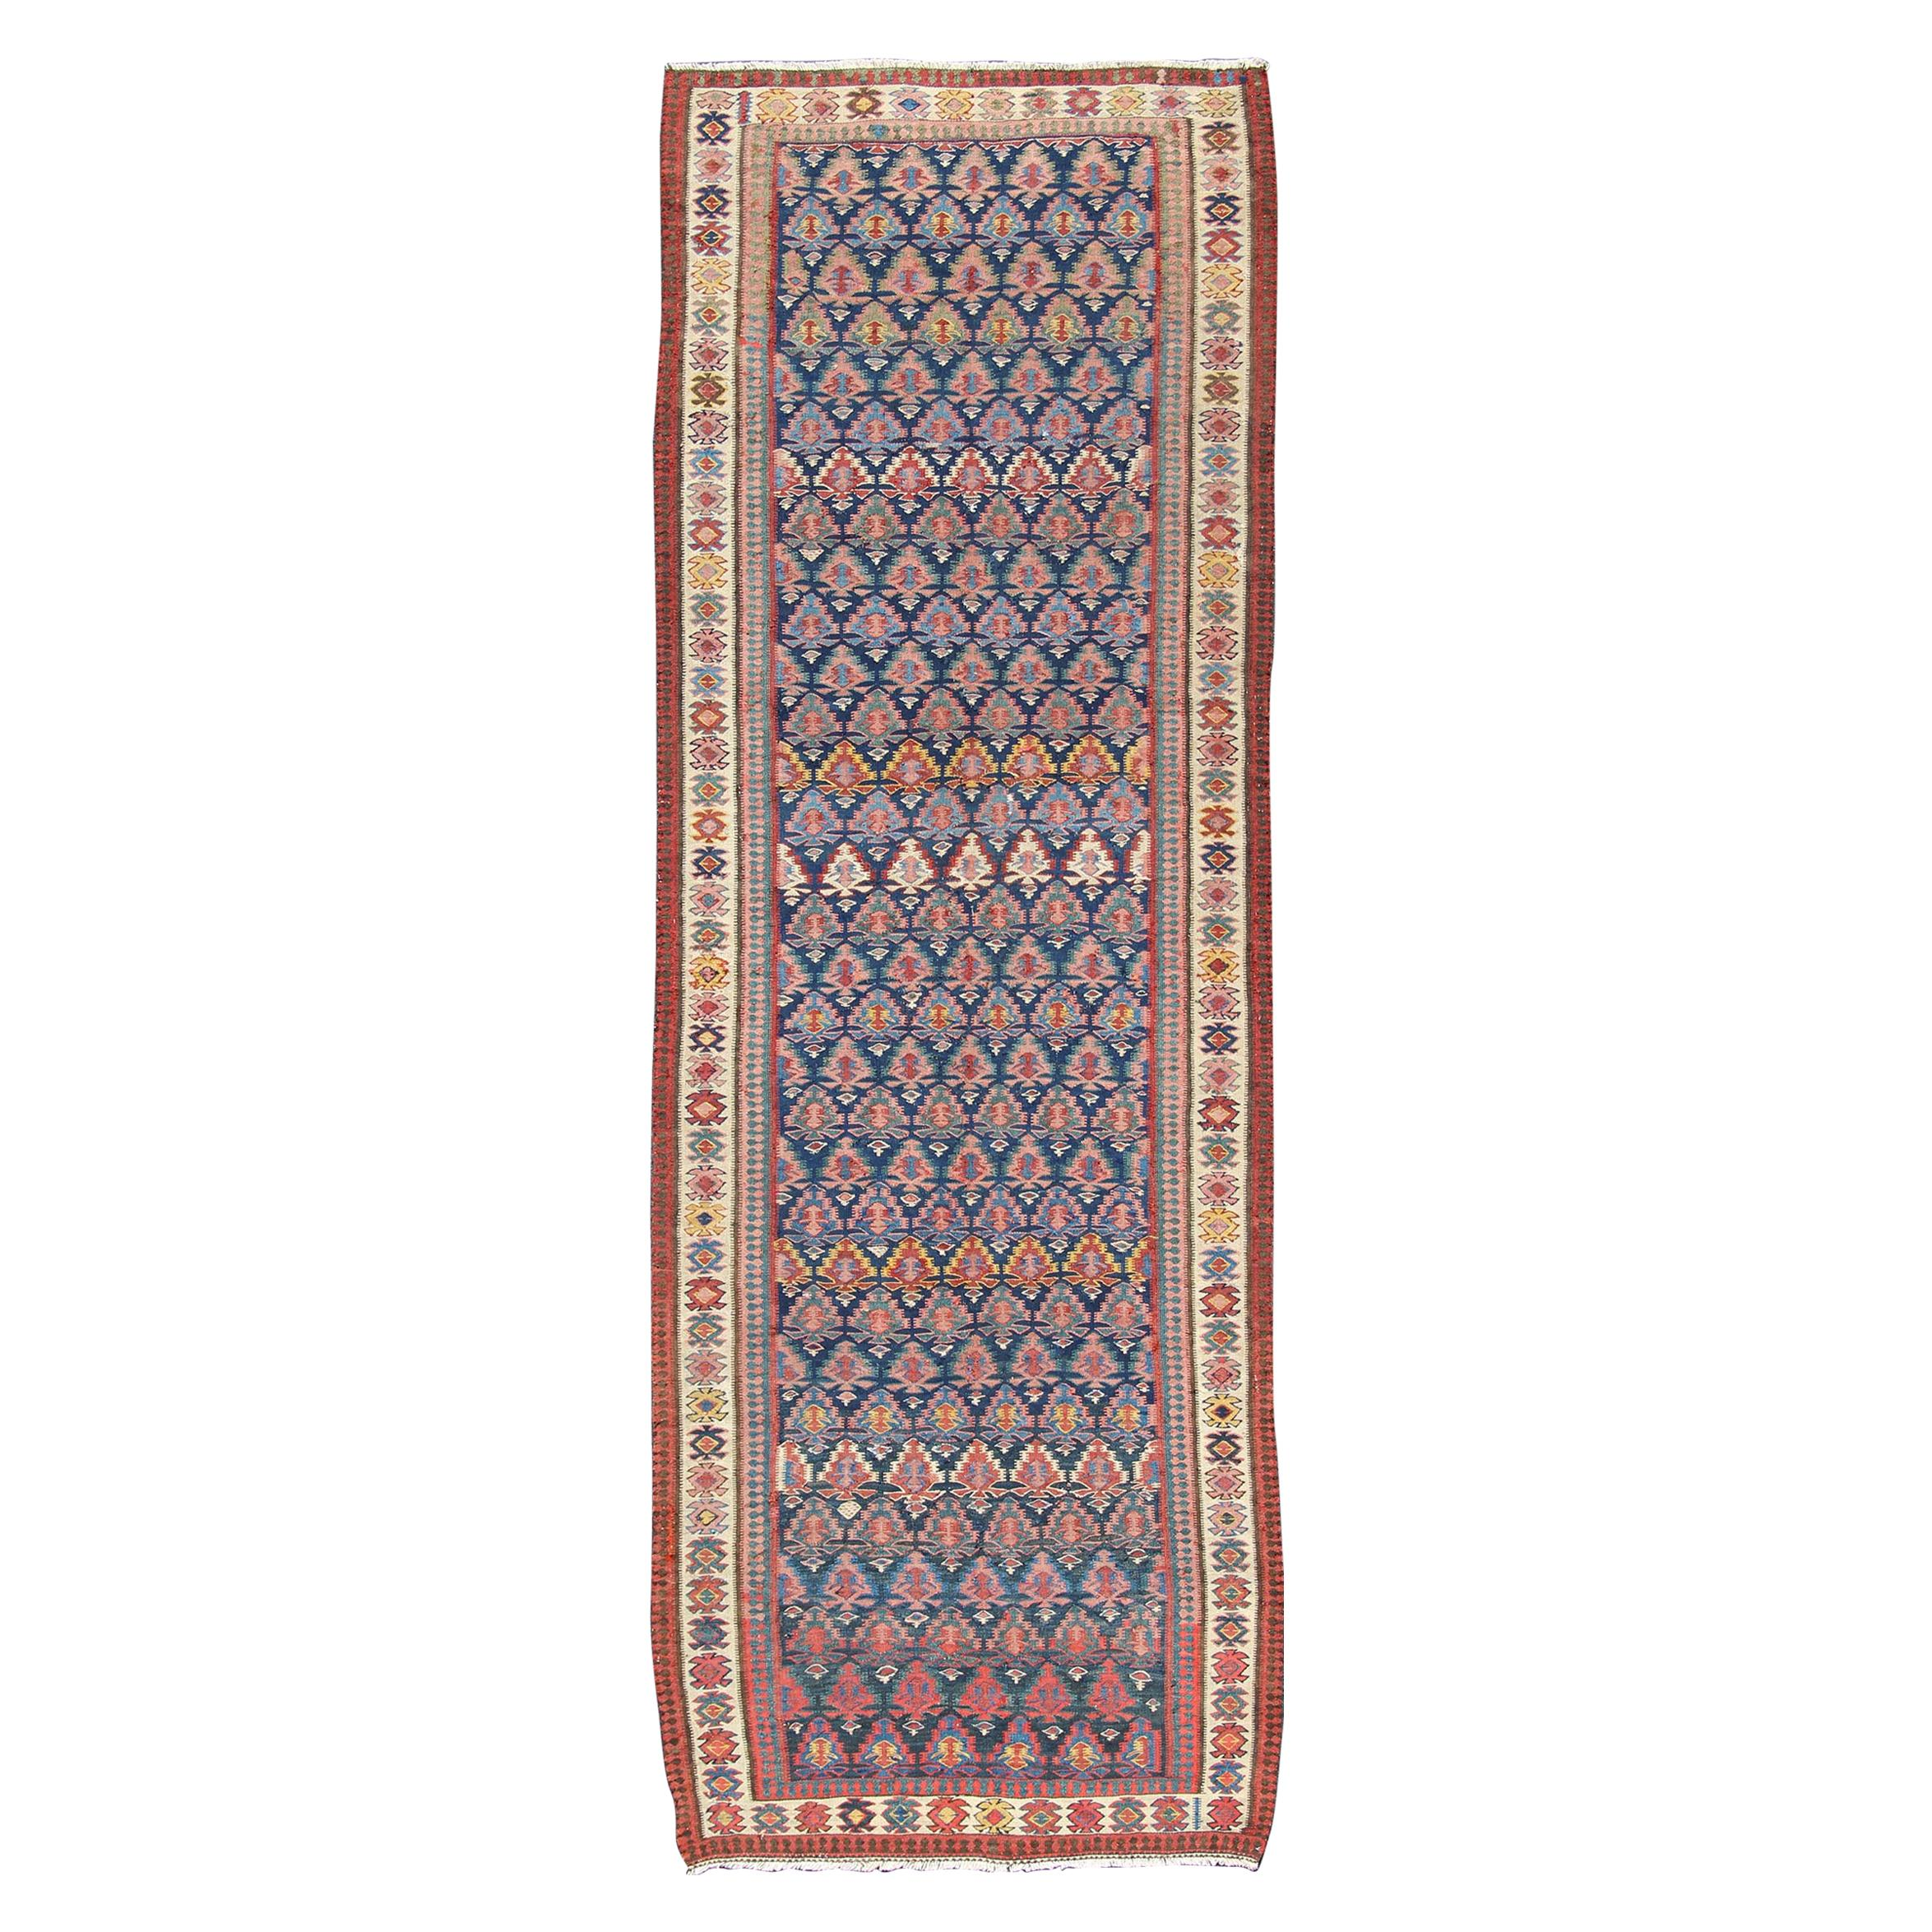 Antique Persian Seneh Kilim Gallery Runner with Geometric and Floral Design